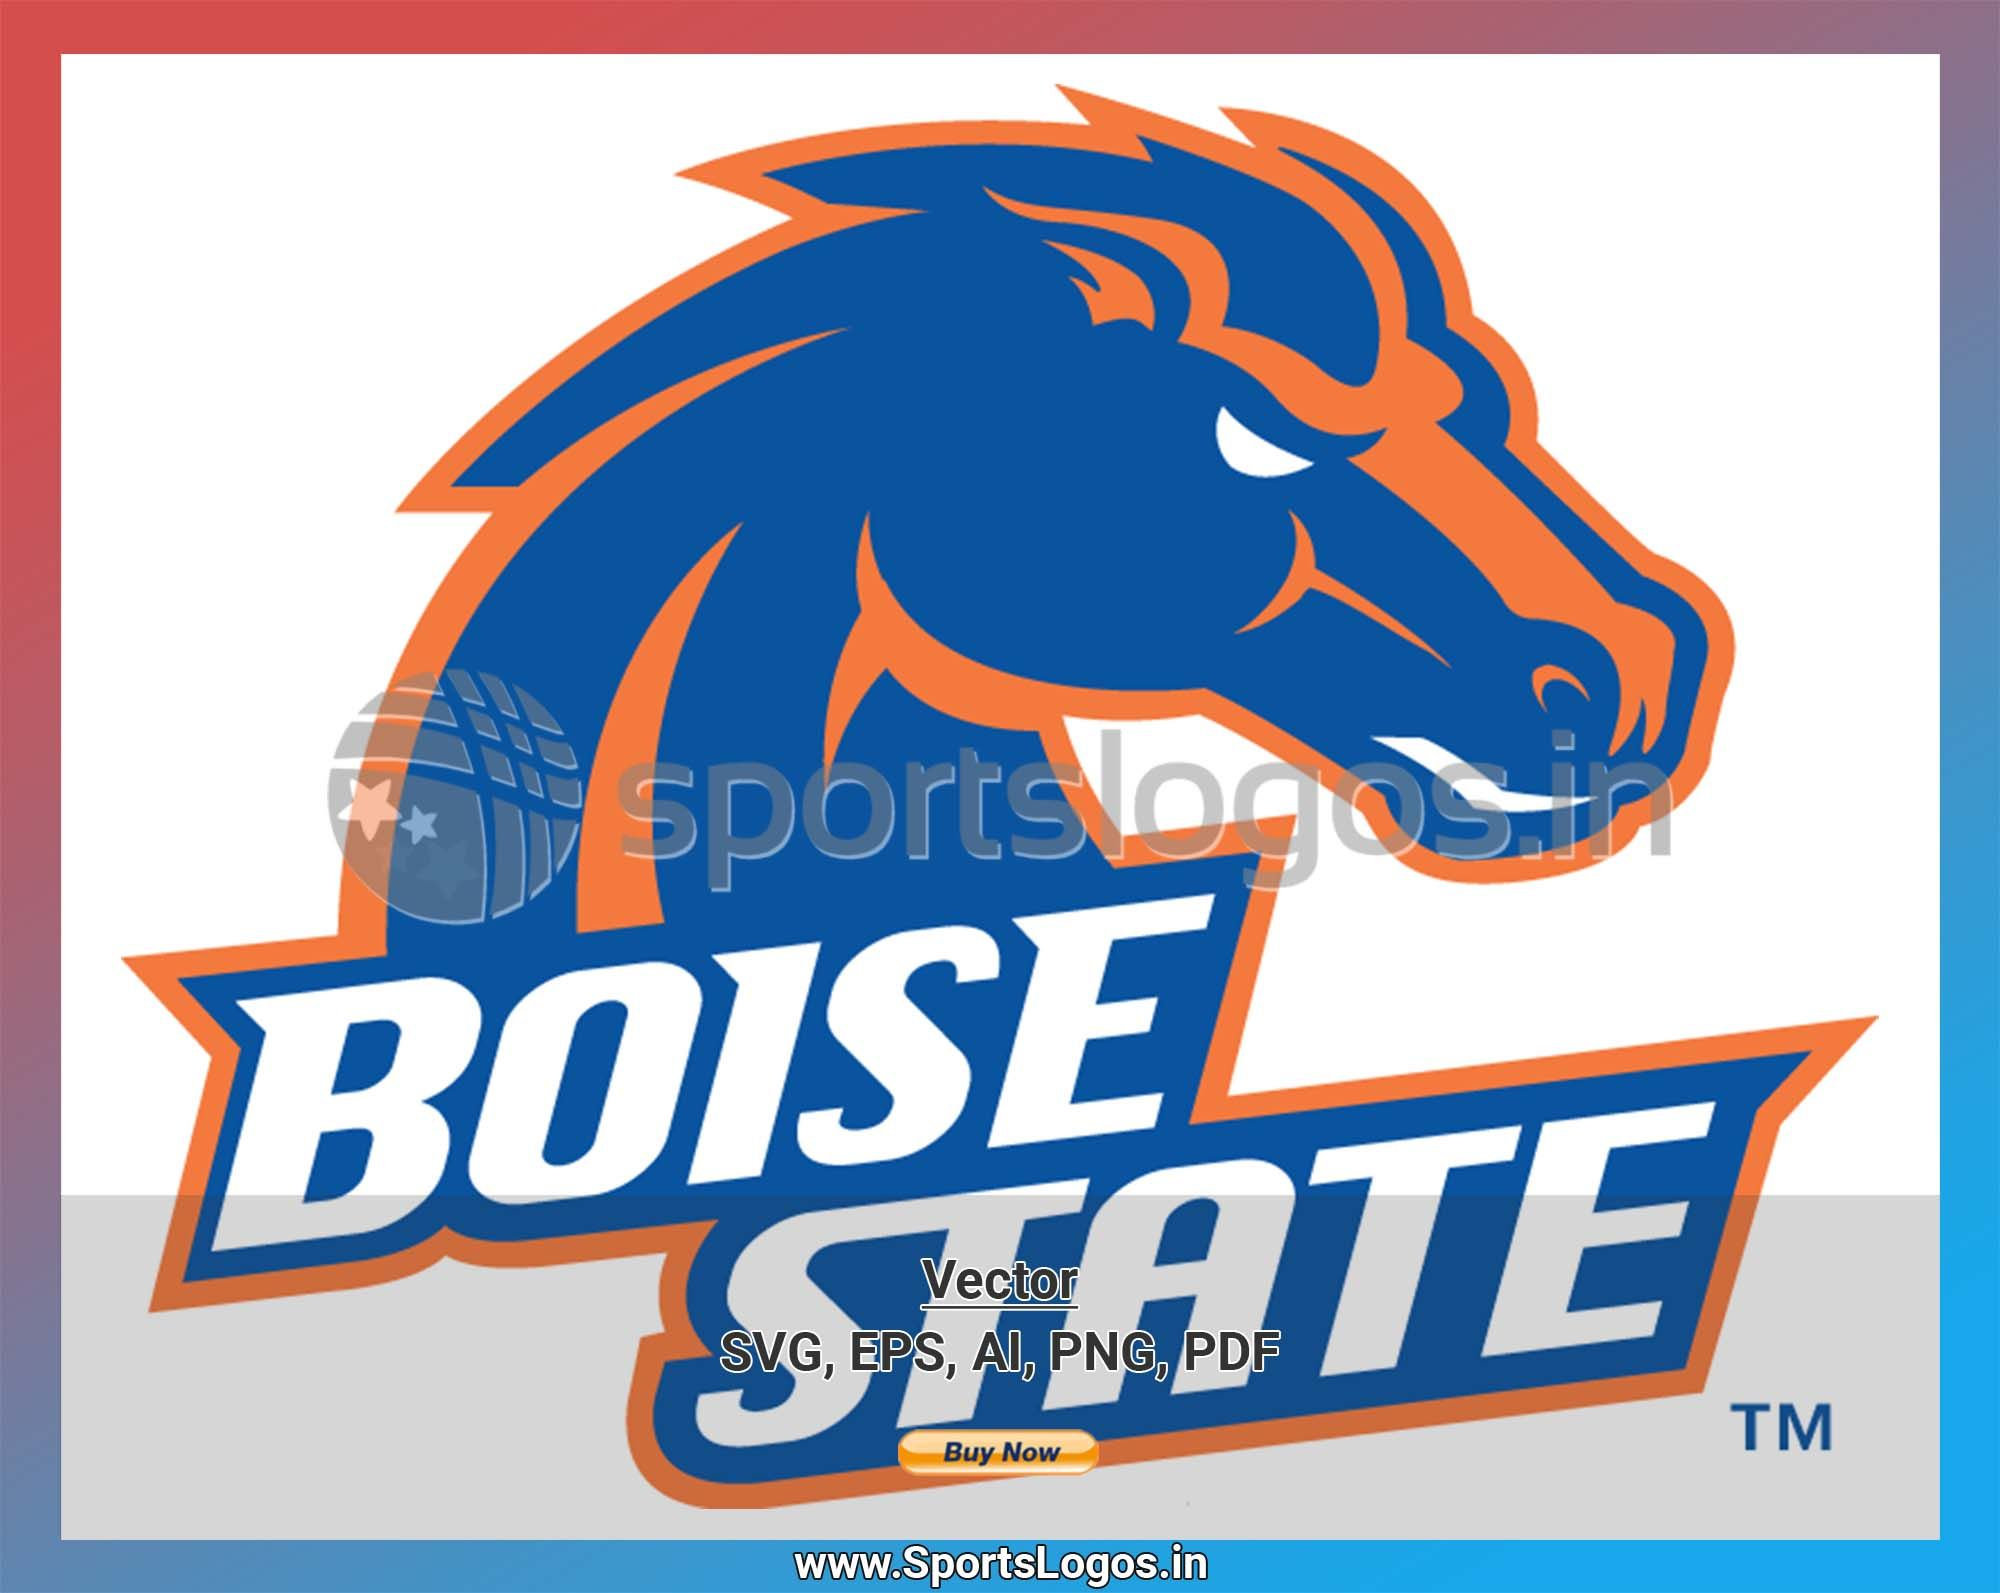 Boise State Broncos 20022012, NCAA Division I (ac